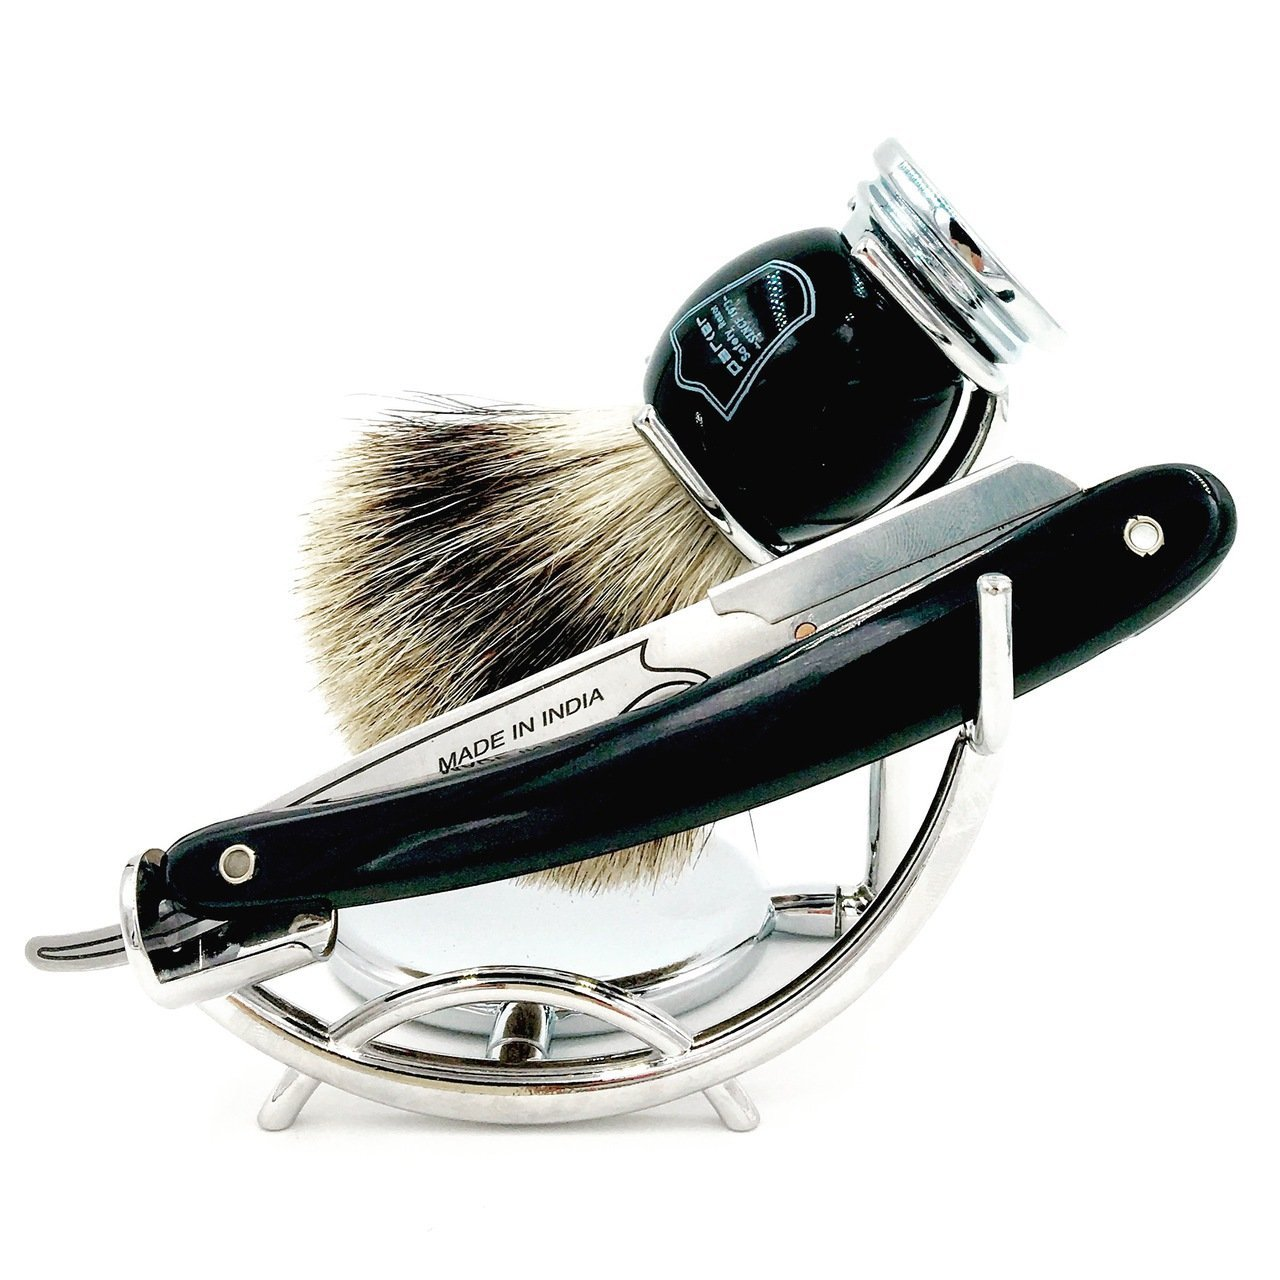 d53e7bae0dfc Parker s SRB Replaceable Blade Straight Edge Barber Razor Shave Set - Includes  Parker s 100% Pure